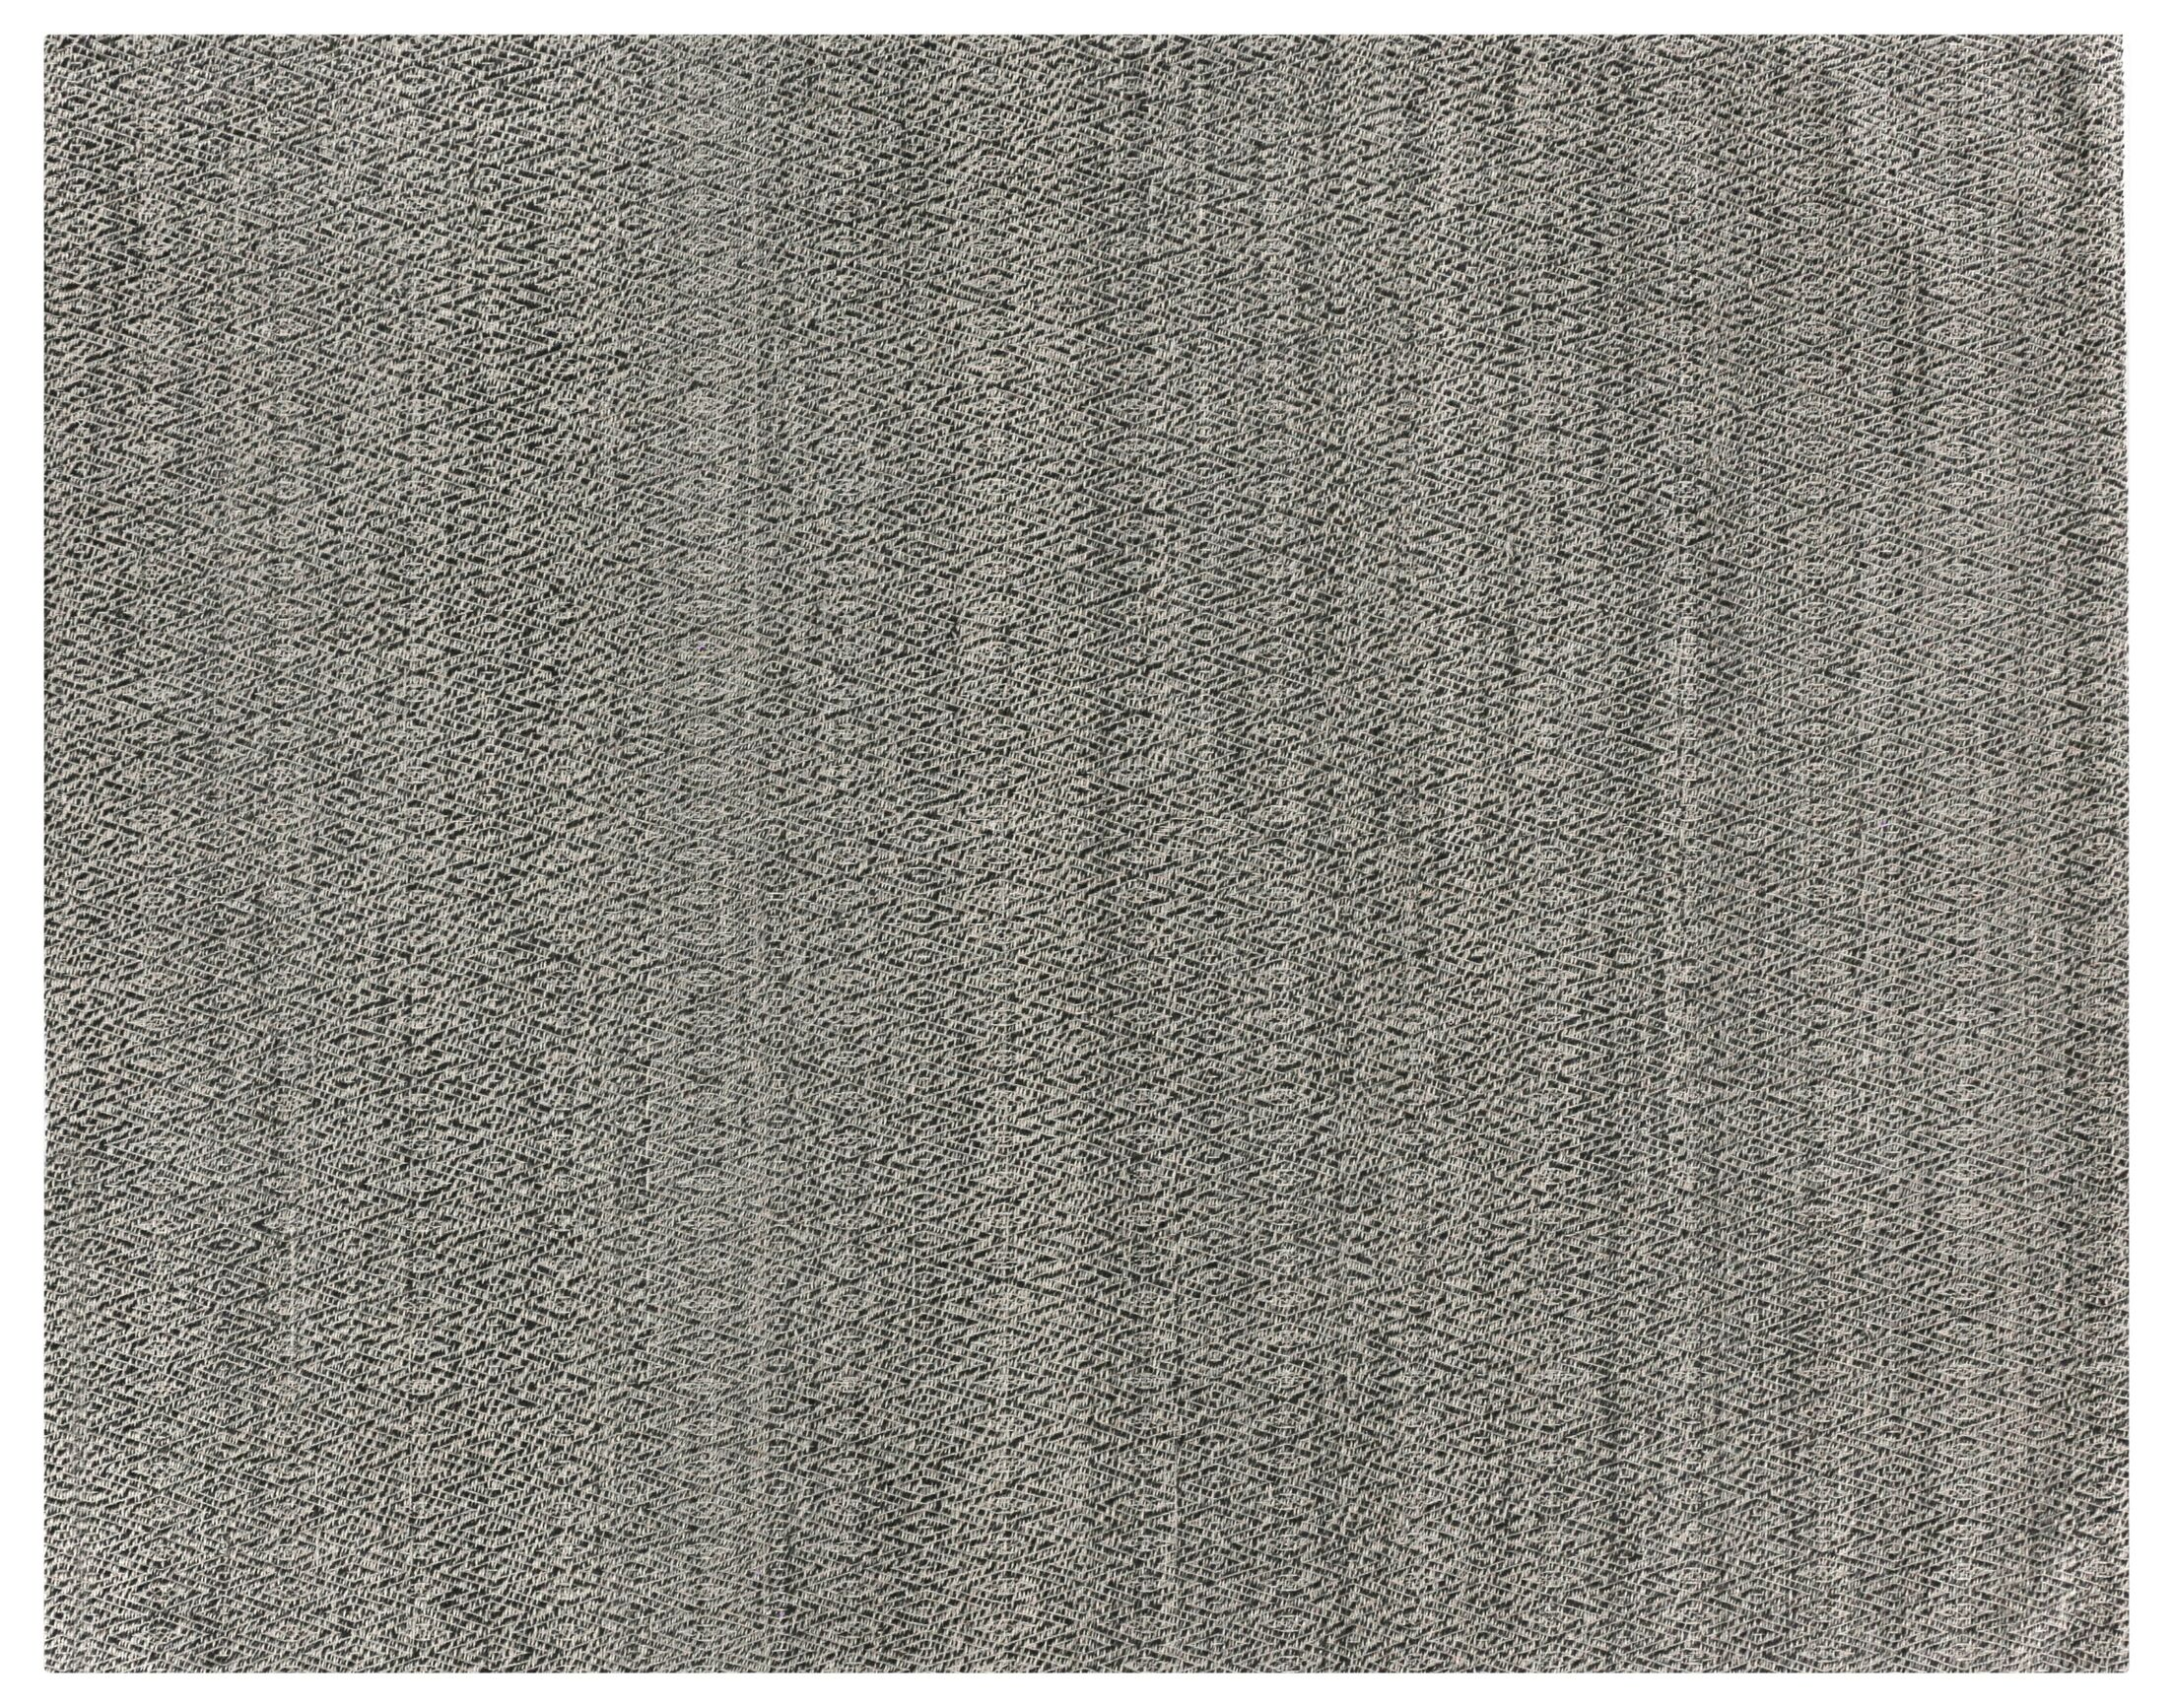 Hand-Woven Wool Black Area Rug Rug Size: Rectangle 12' x 15'